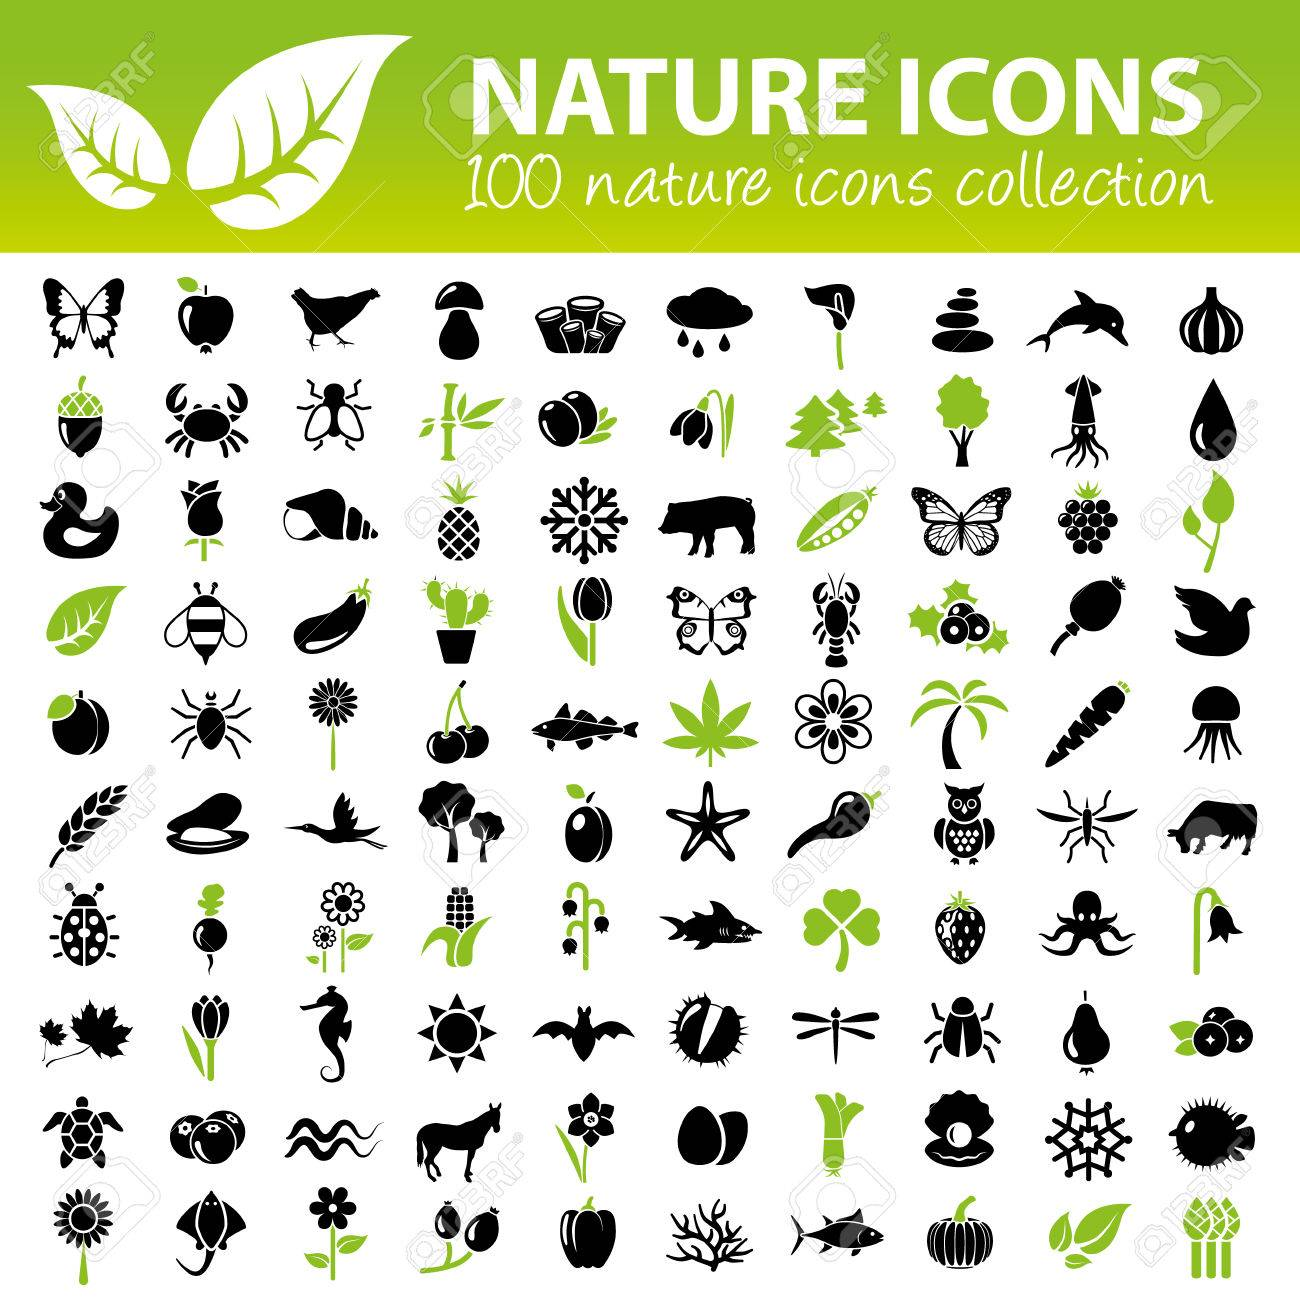 nature icons collection - 35112088